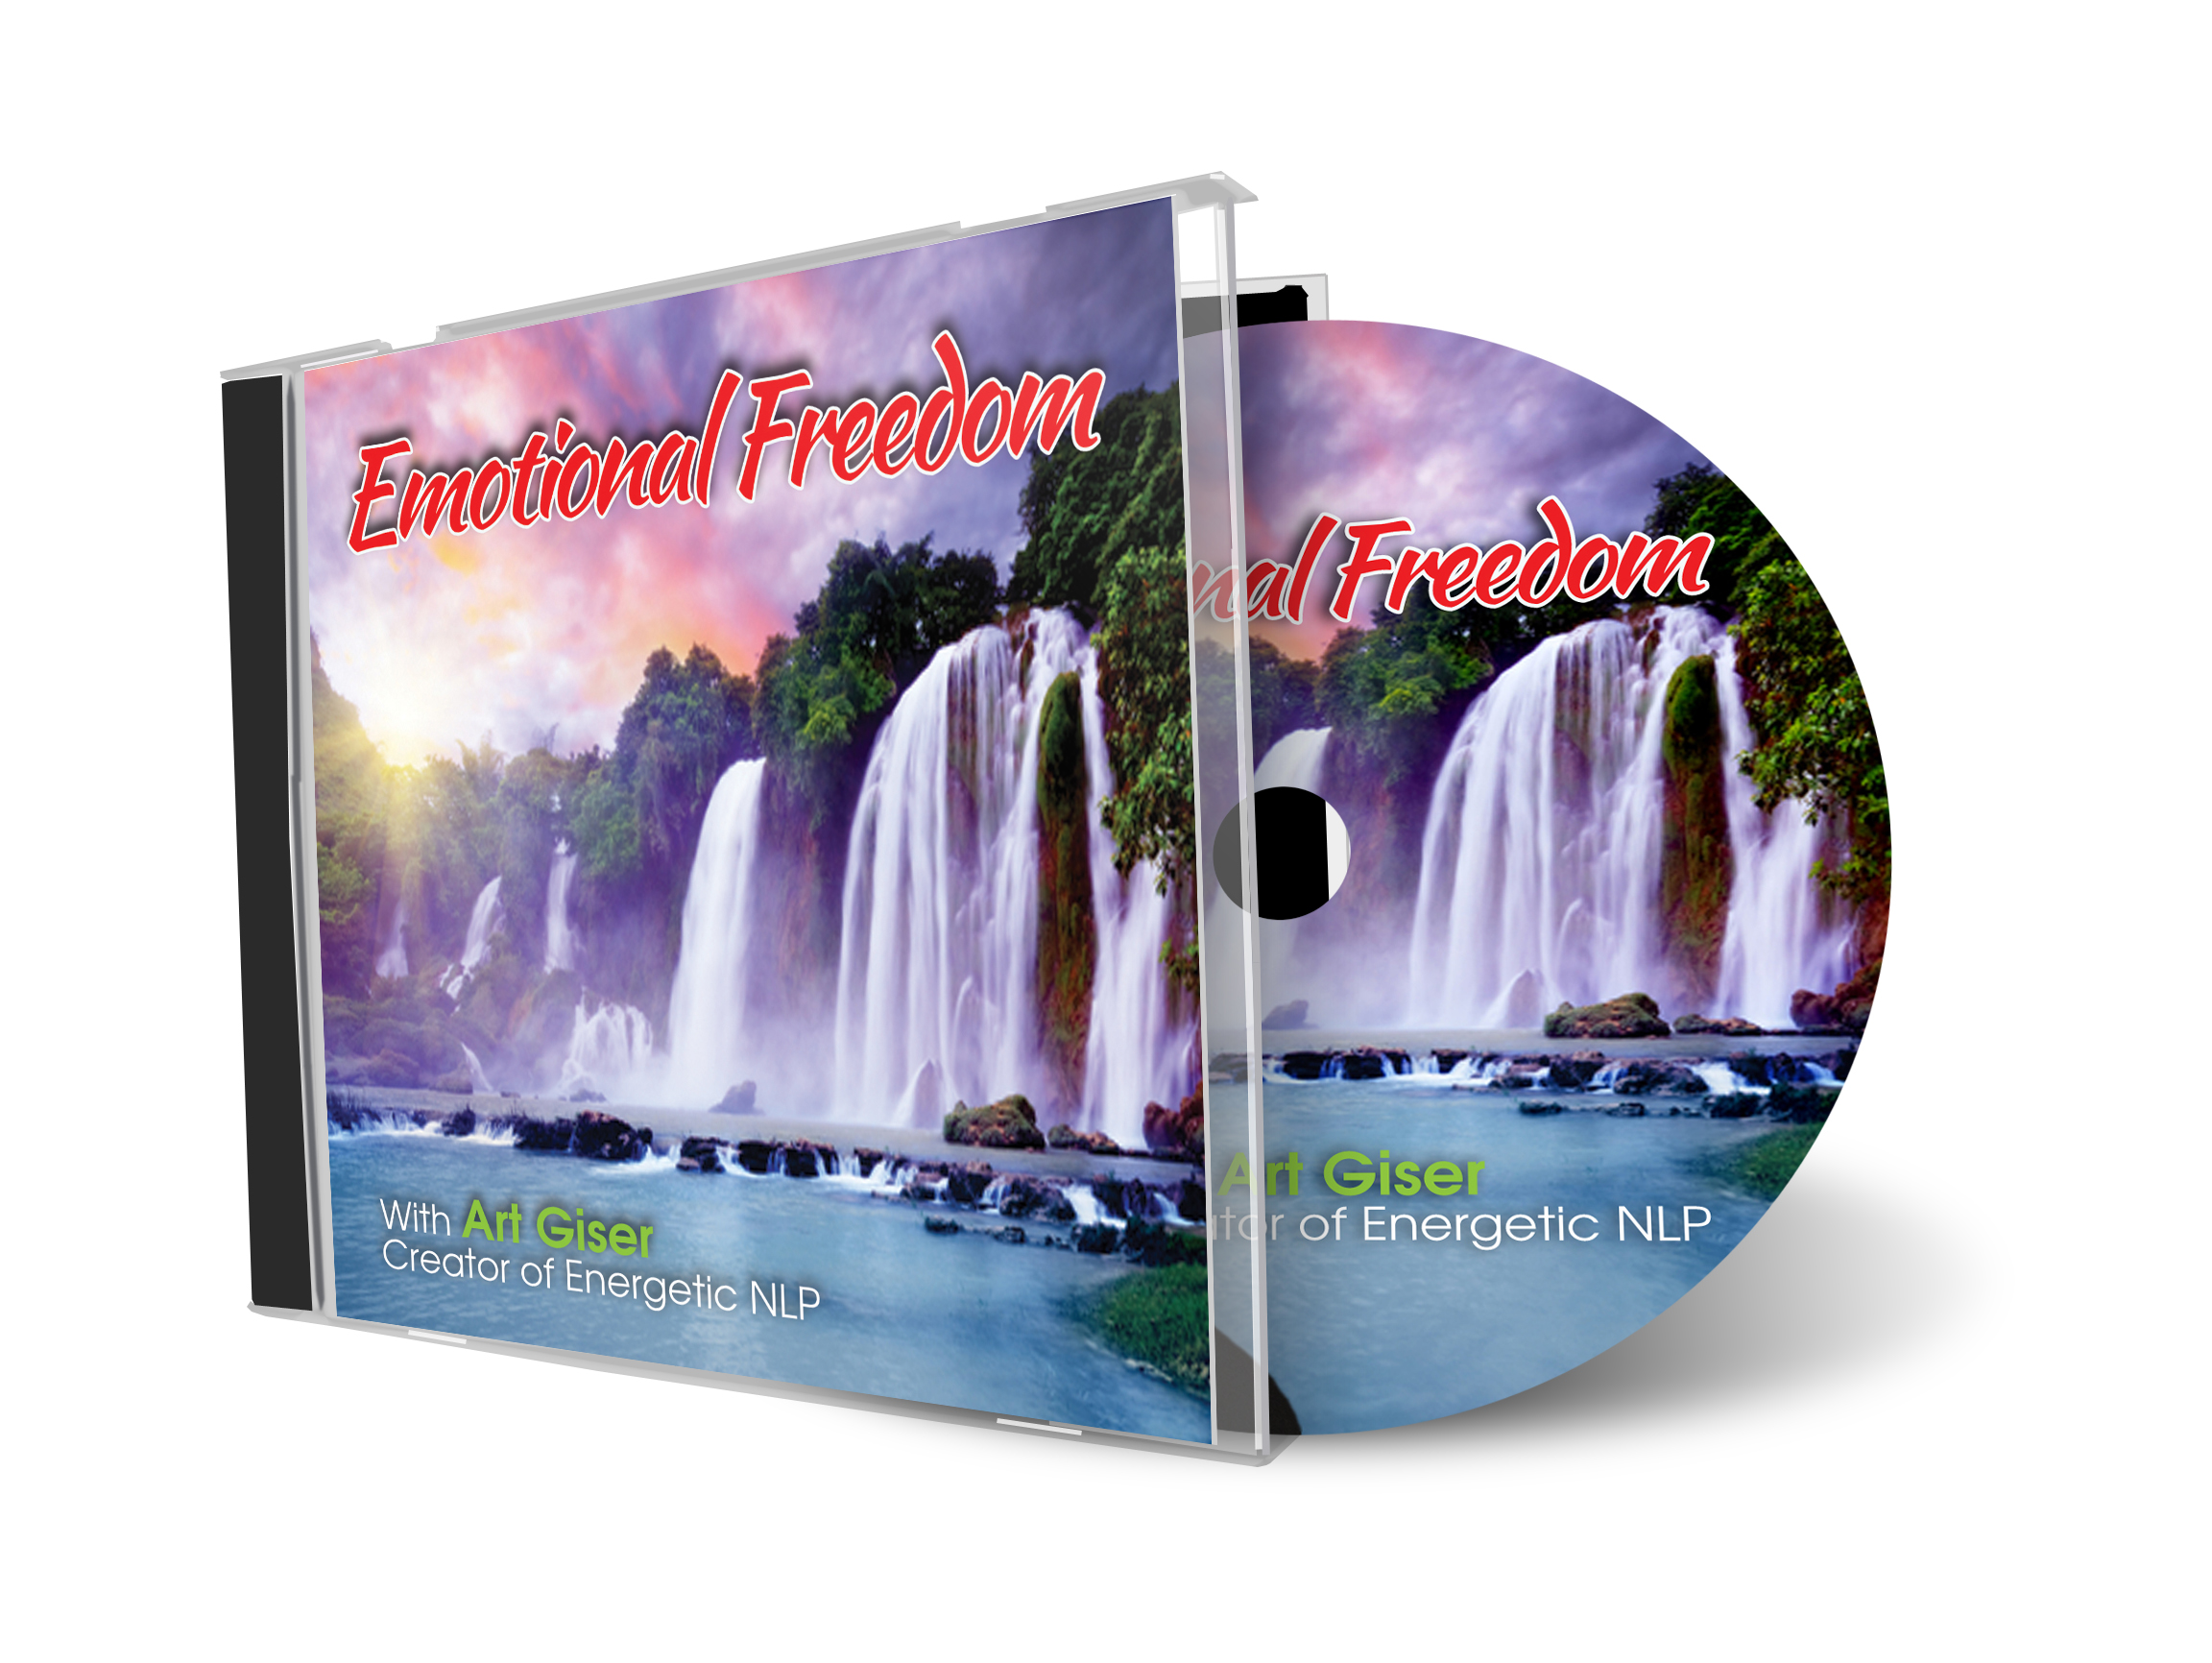 Emotional Freedom Promo 2